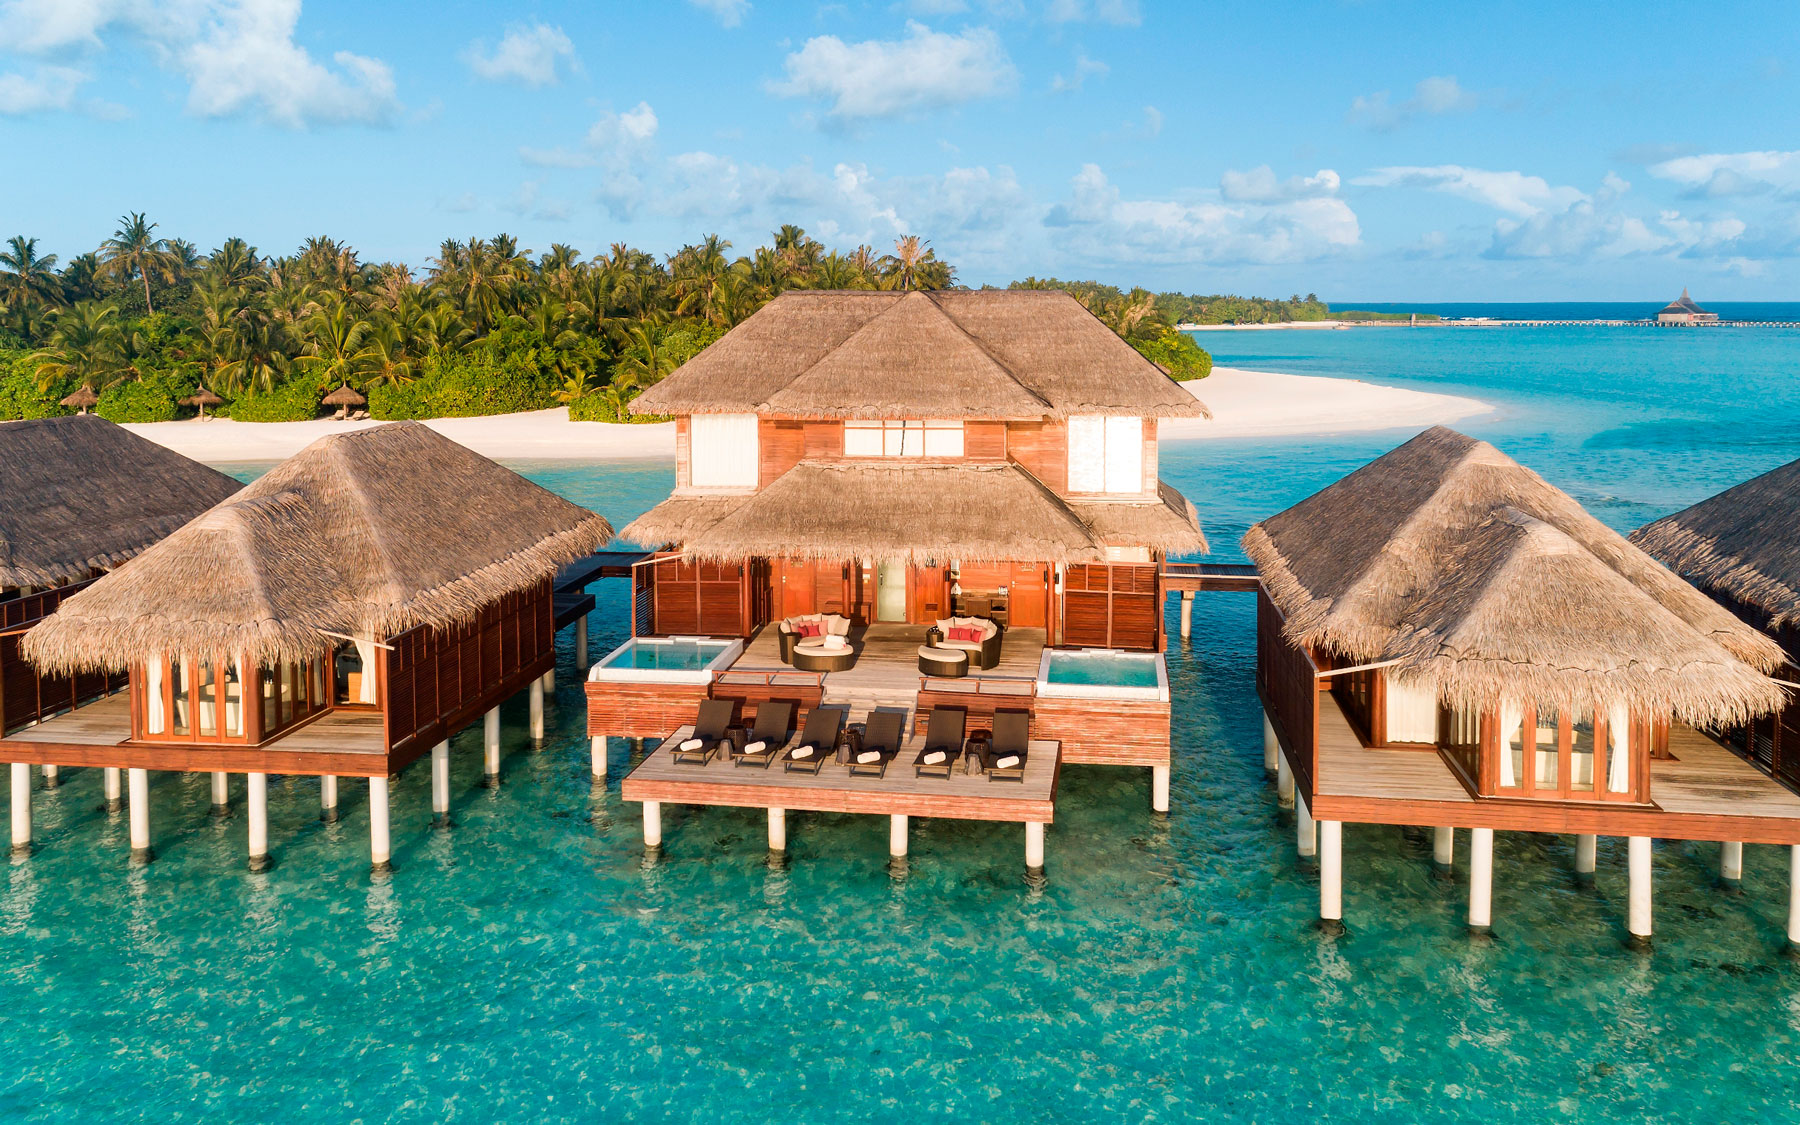 Here's What a $100,000 Per Night Private Island Rental Gets You in the Maldives – Travel + Leisure